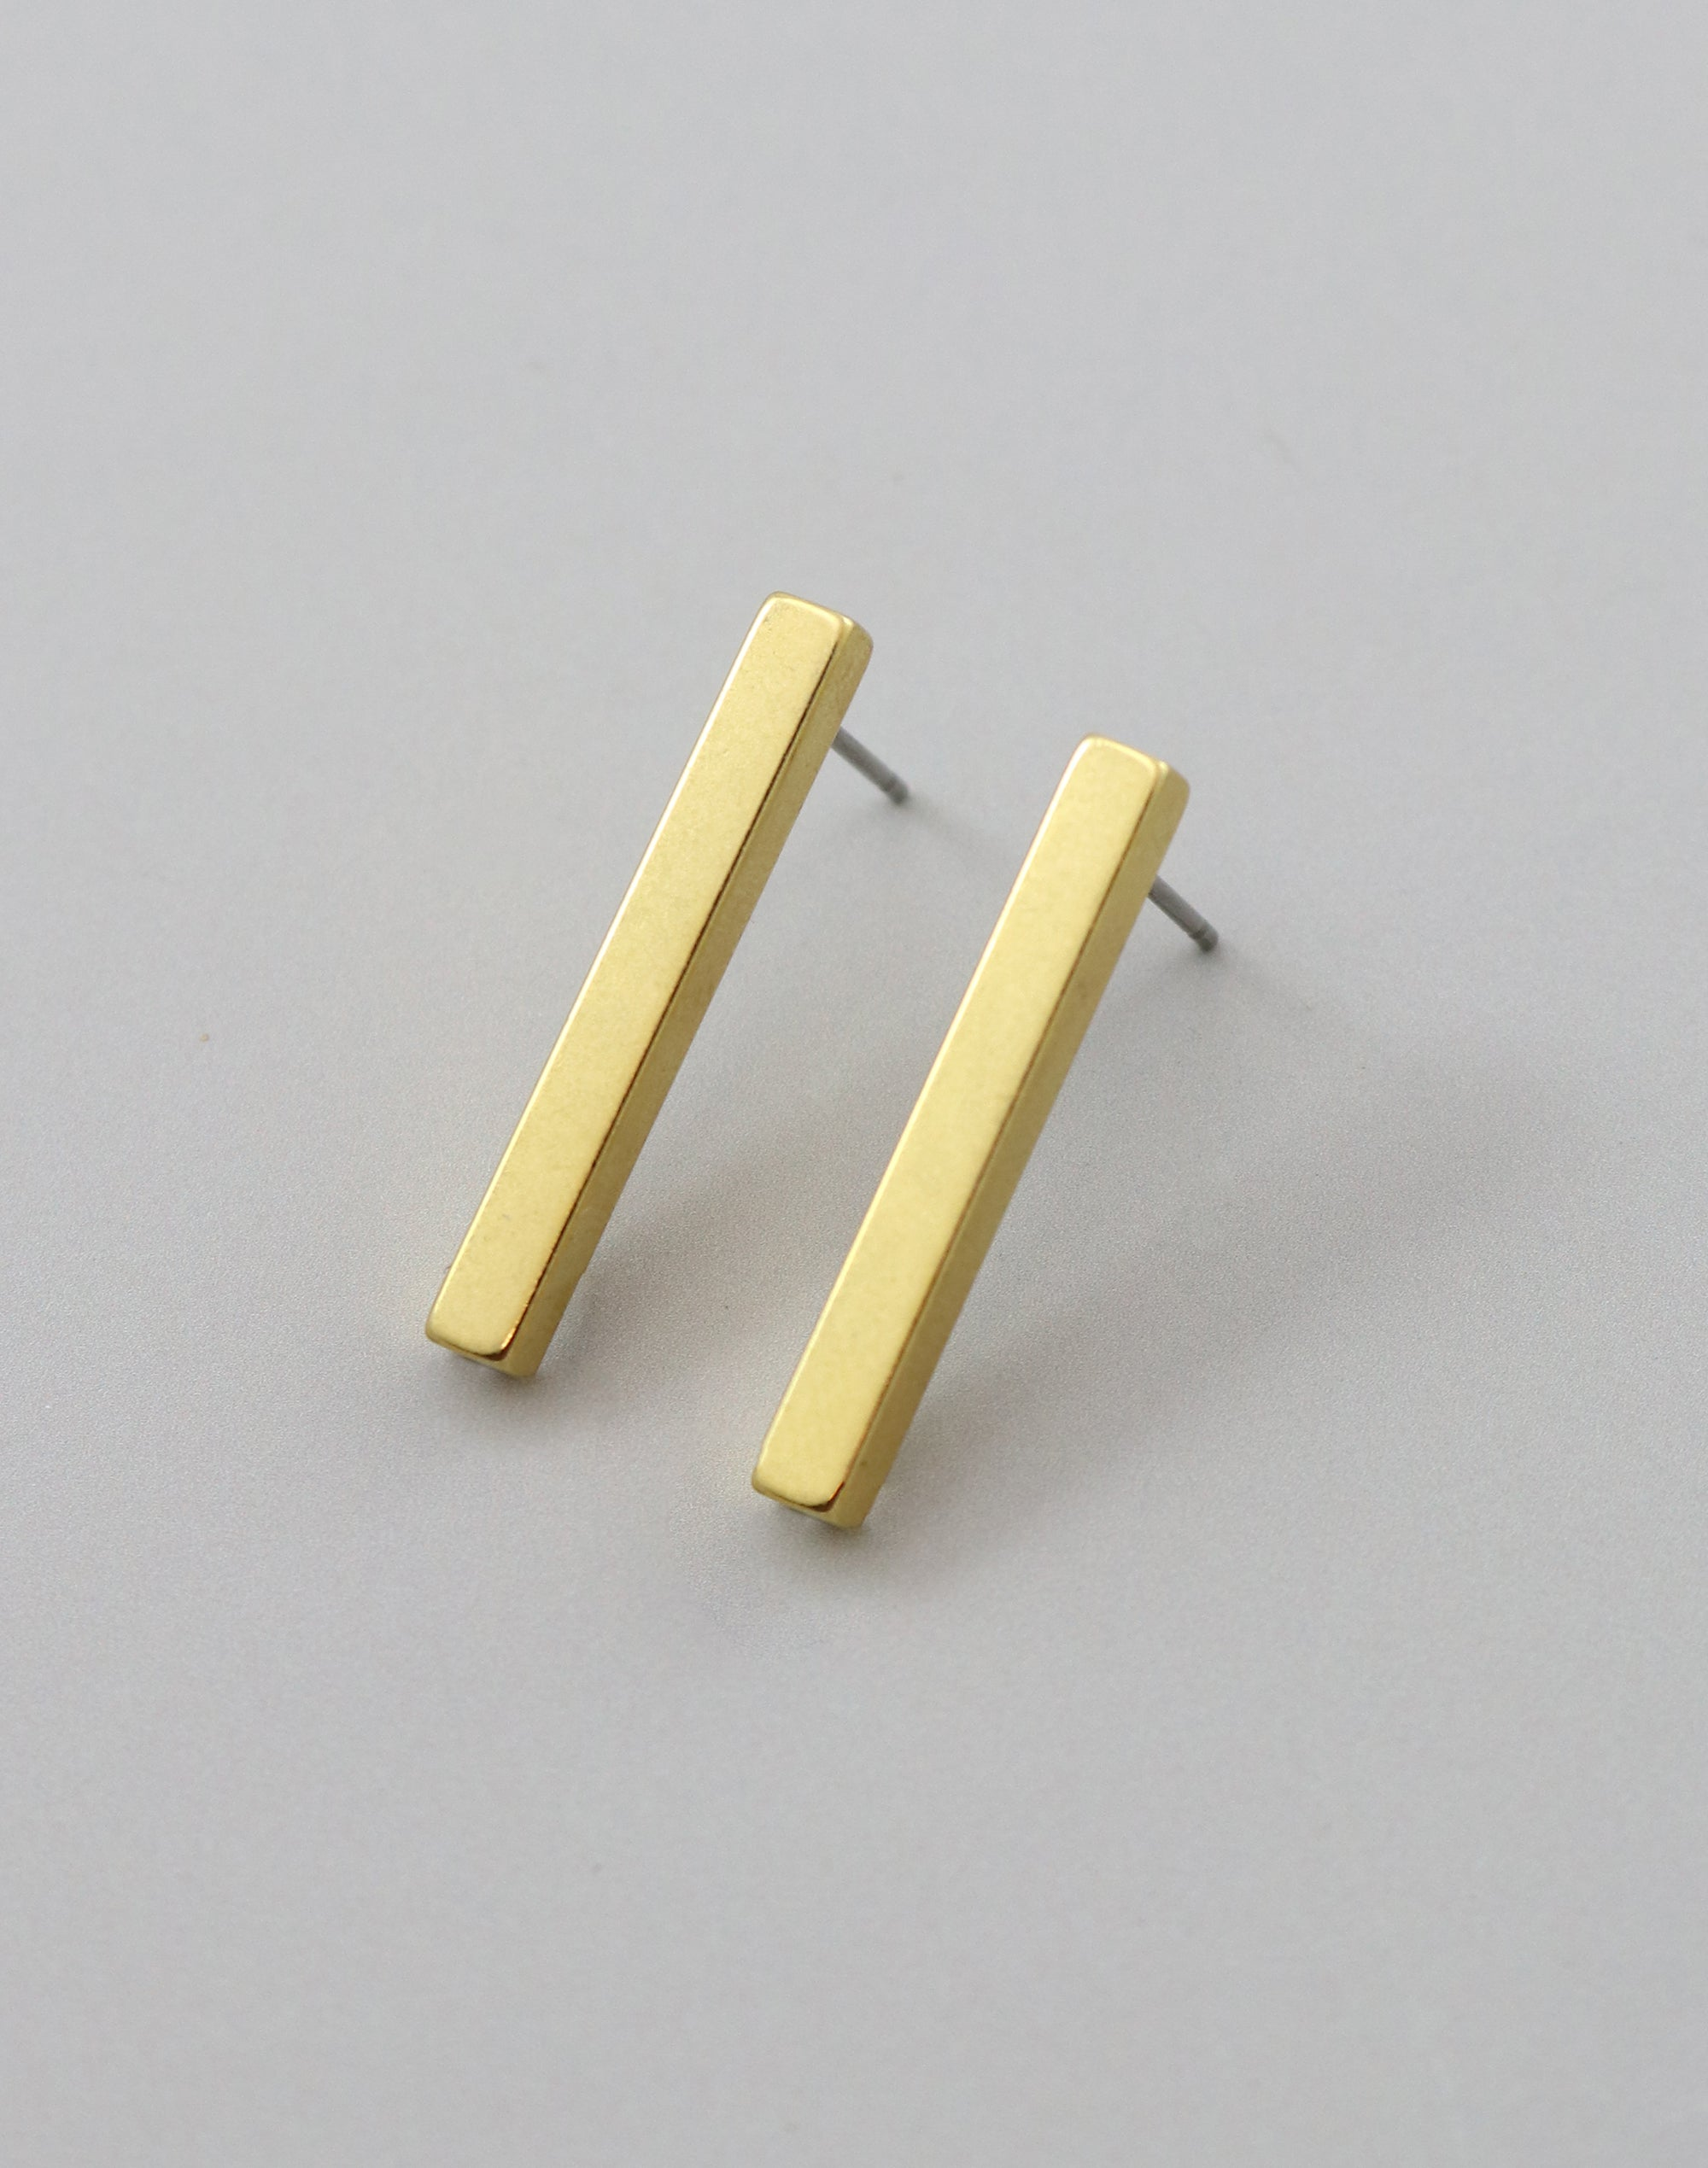 Bar Post Earring, 25x3mm, (1 pair)